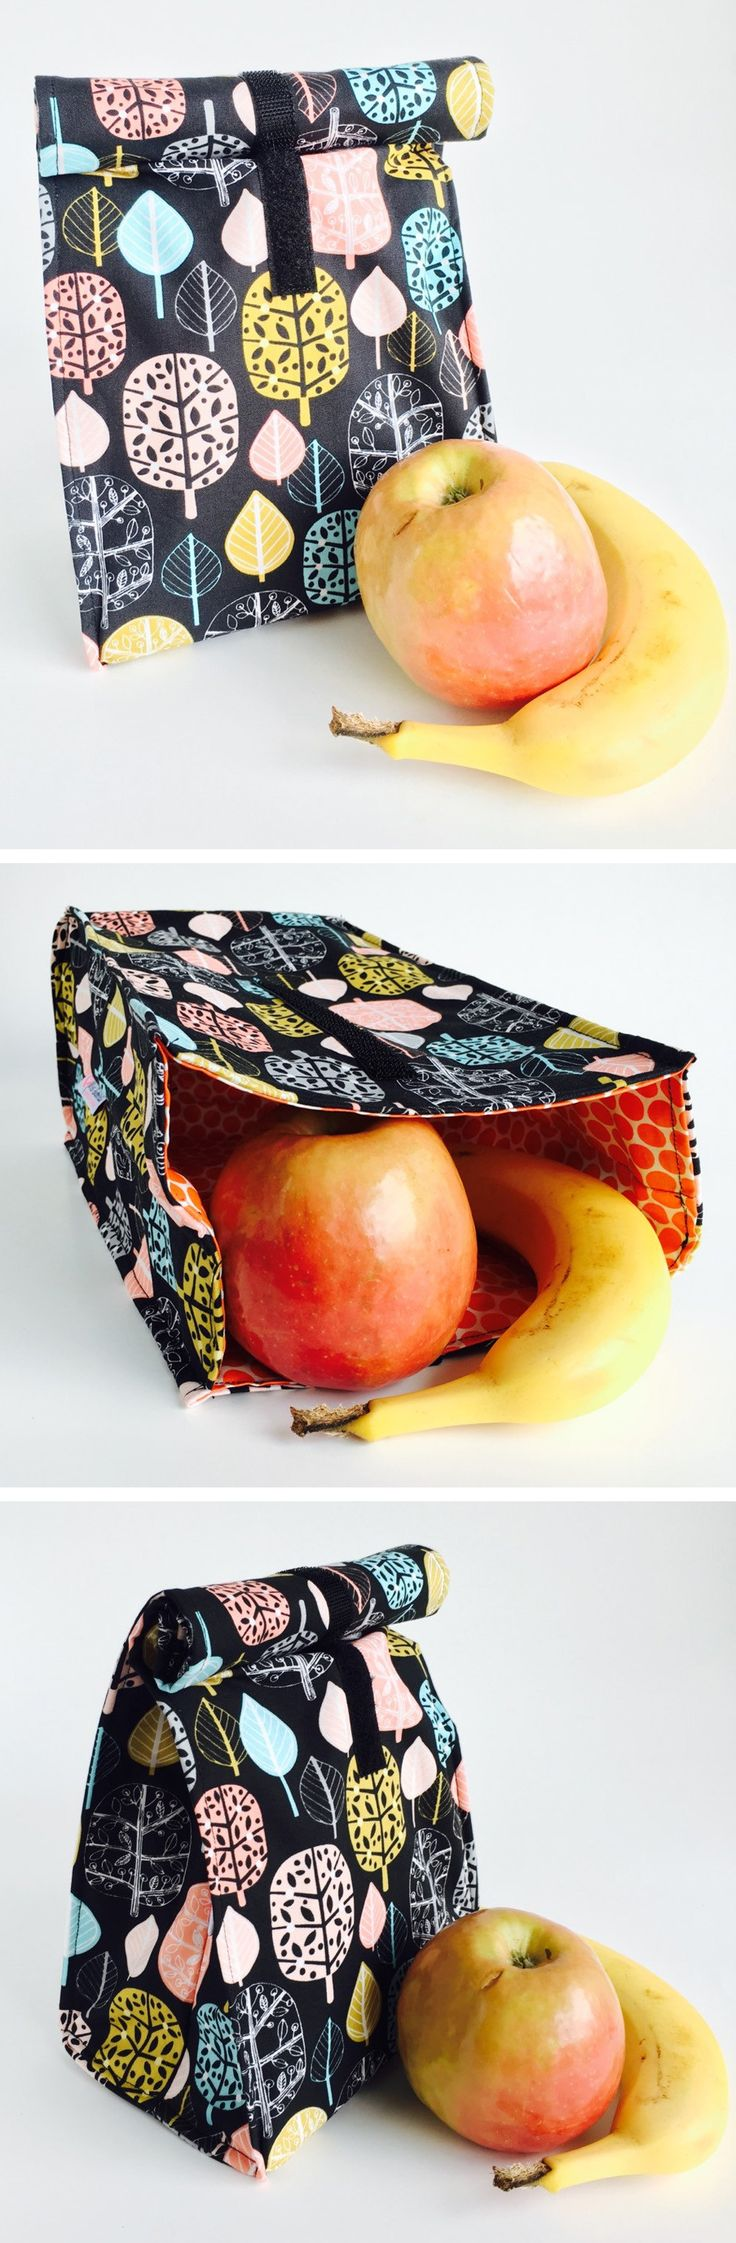 88 Best Foodies For Kids Images On Pinterest Healthy Nutrition Dat Edwina Orange Slip Miss Zuckerlich Madeforgood Lunch Bag Reusable Food Or Fruit Adults